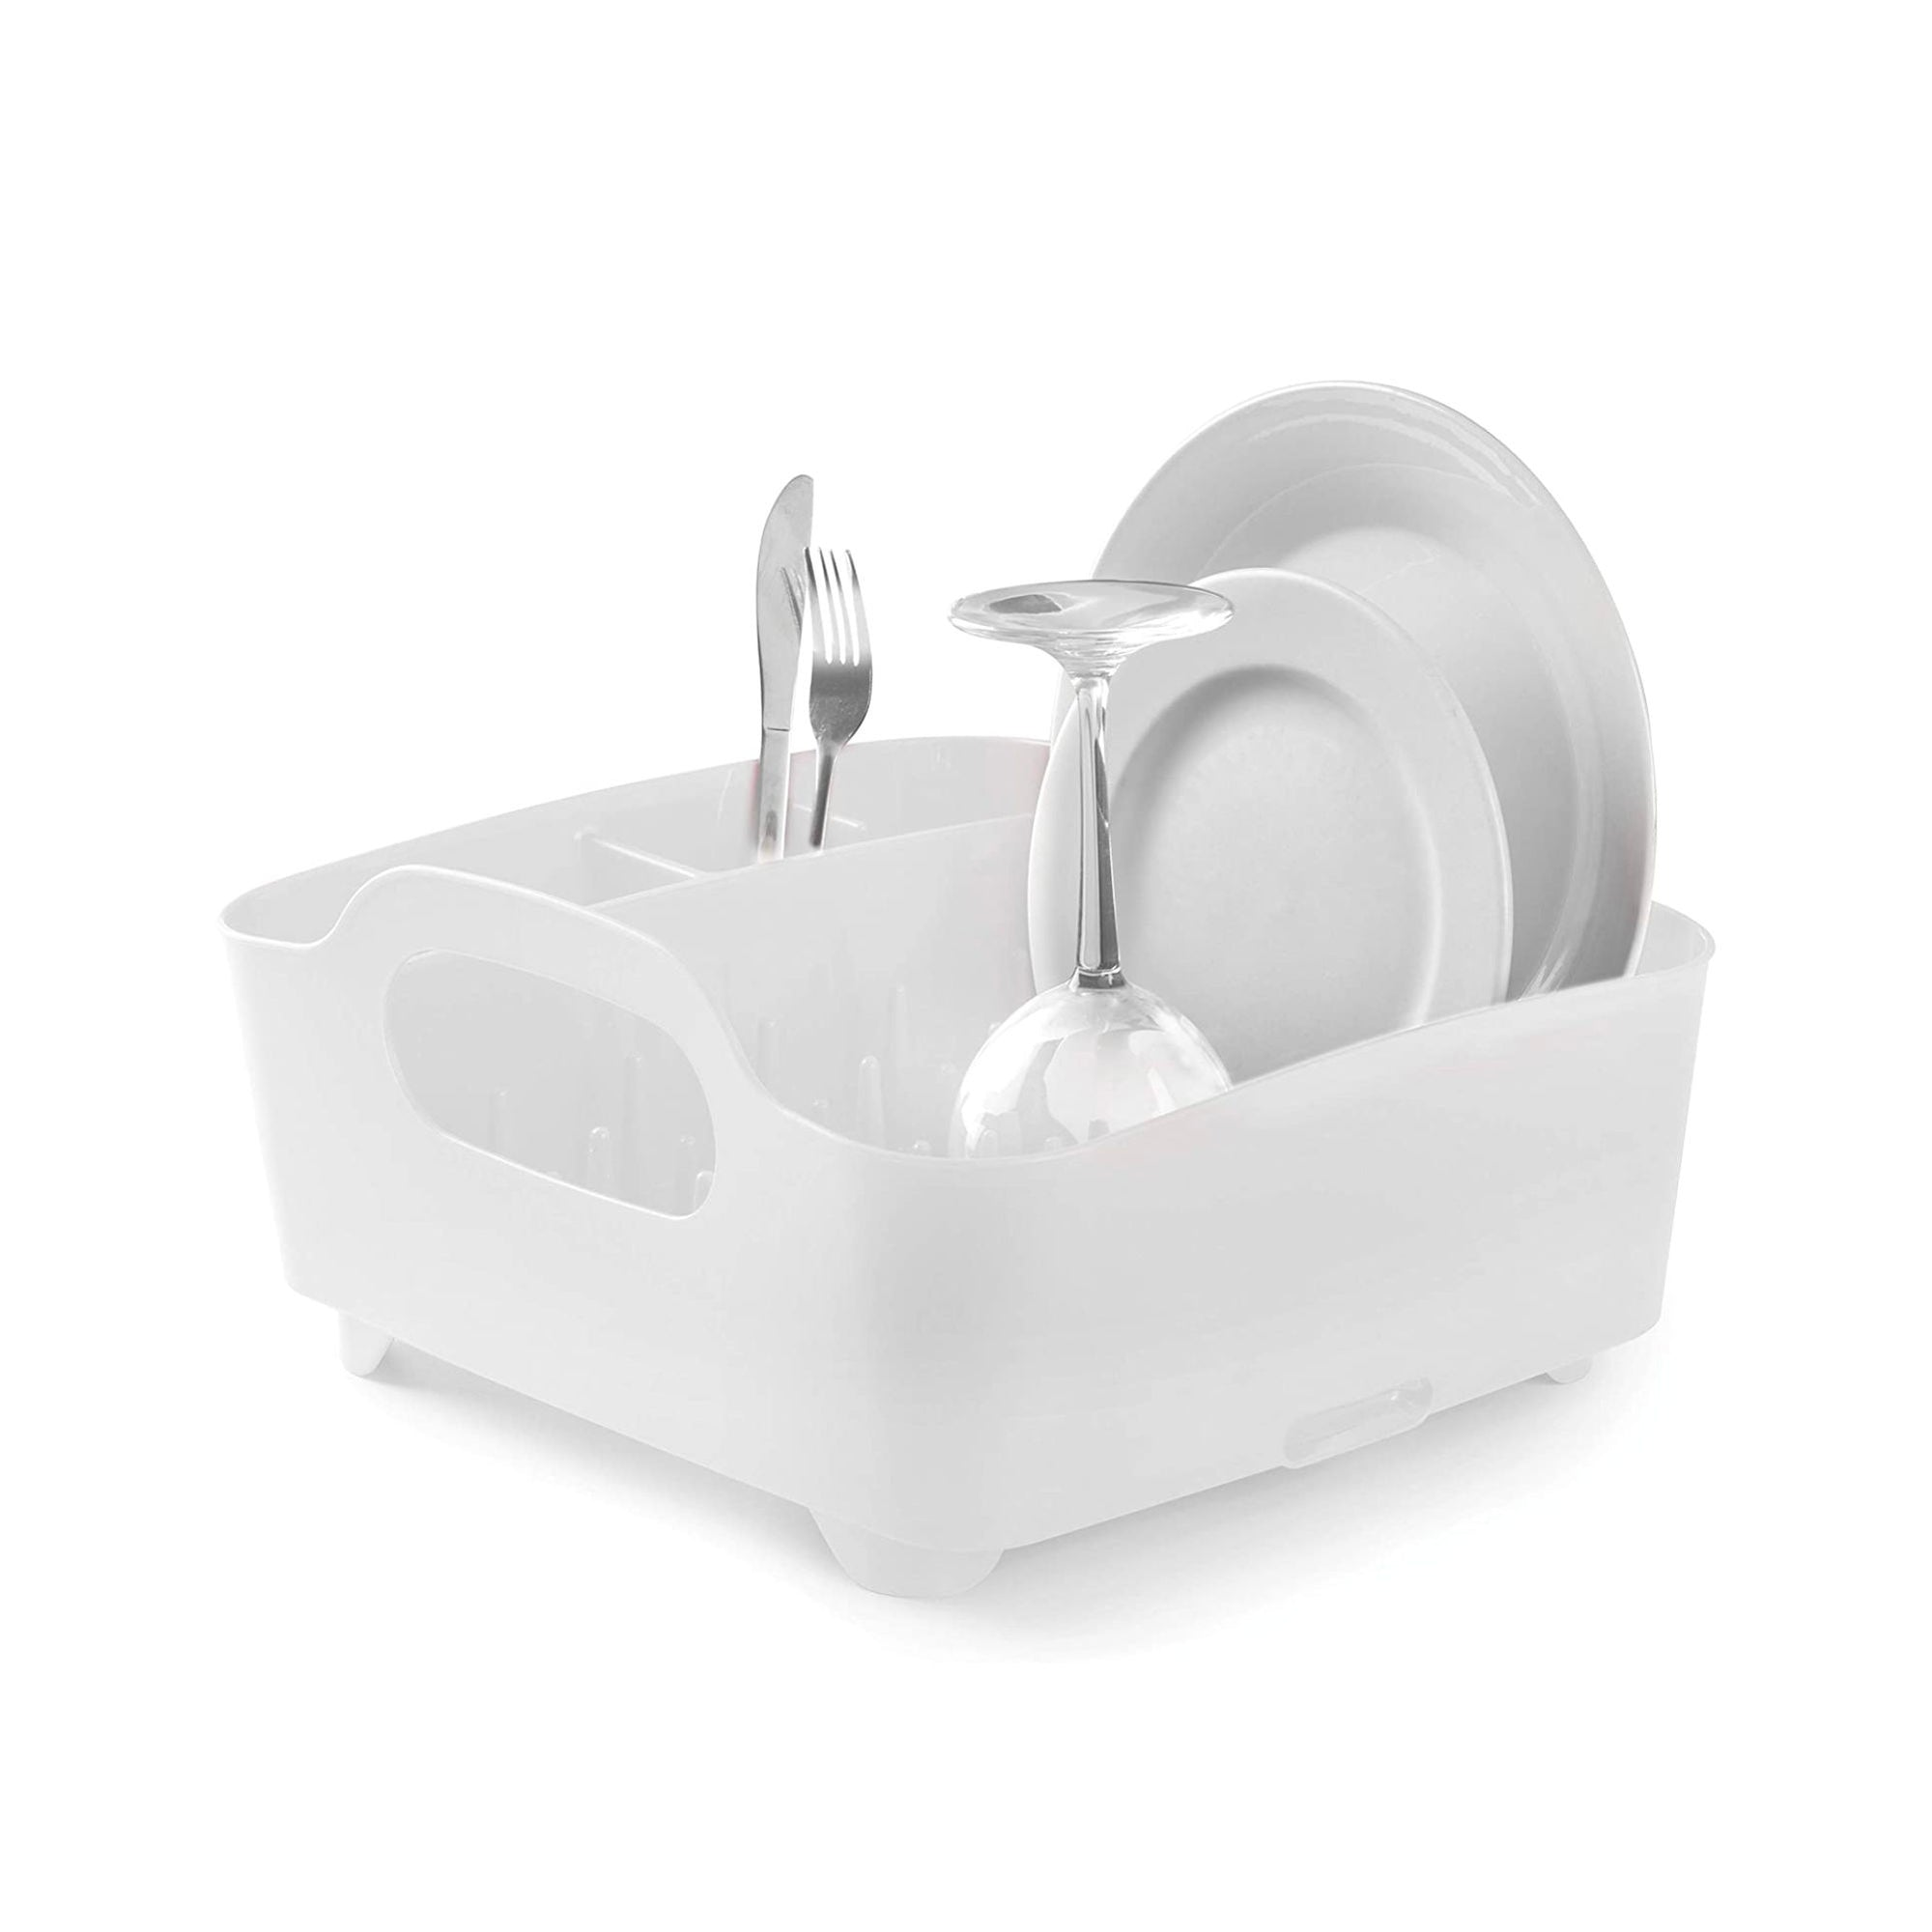 Umbra Tub dish rack, white